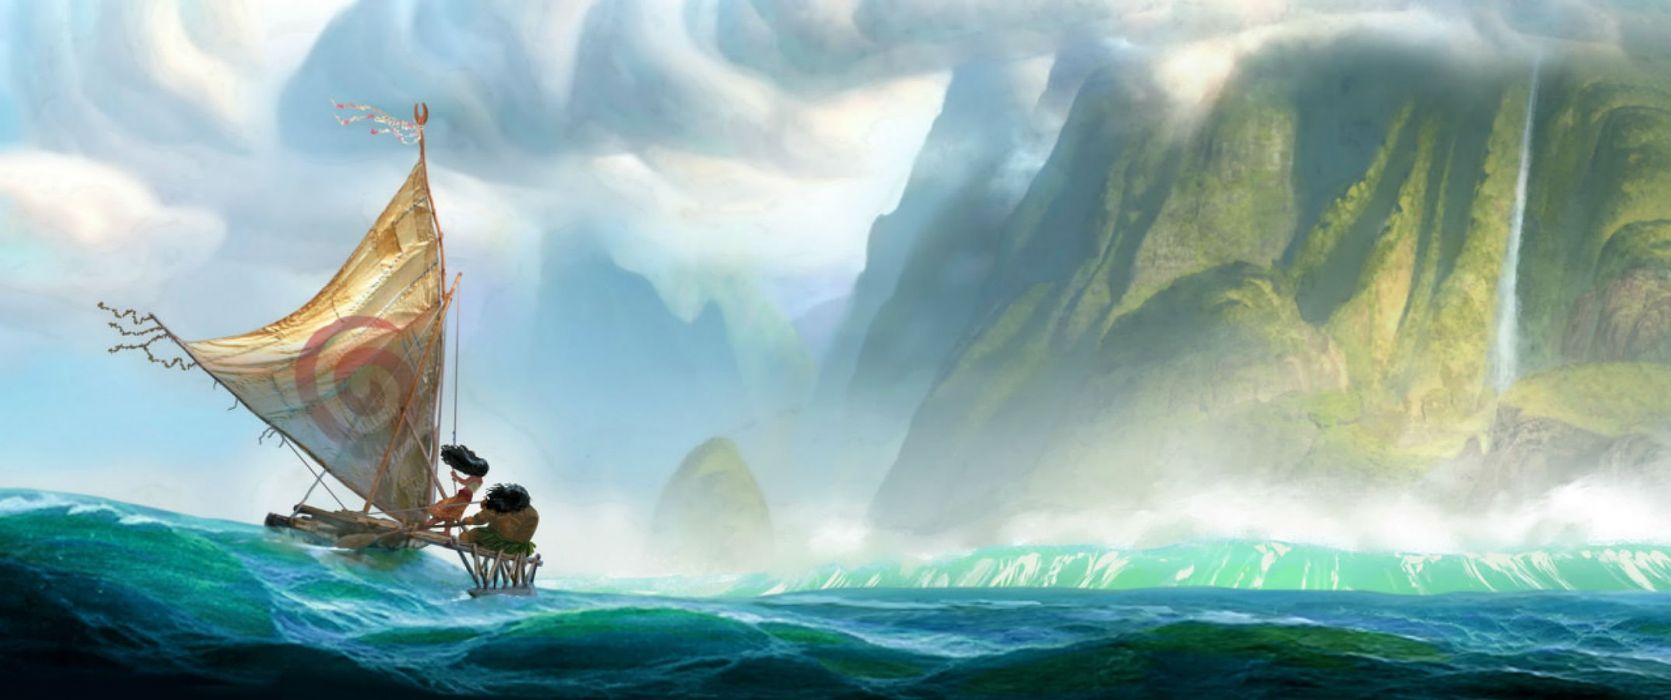 MOANA disney princess fantasy animation adventure musical family 1moana wallpaper